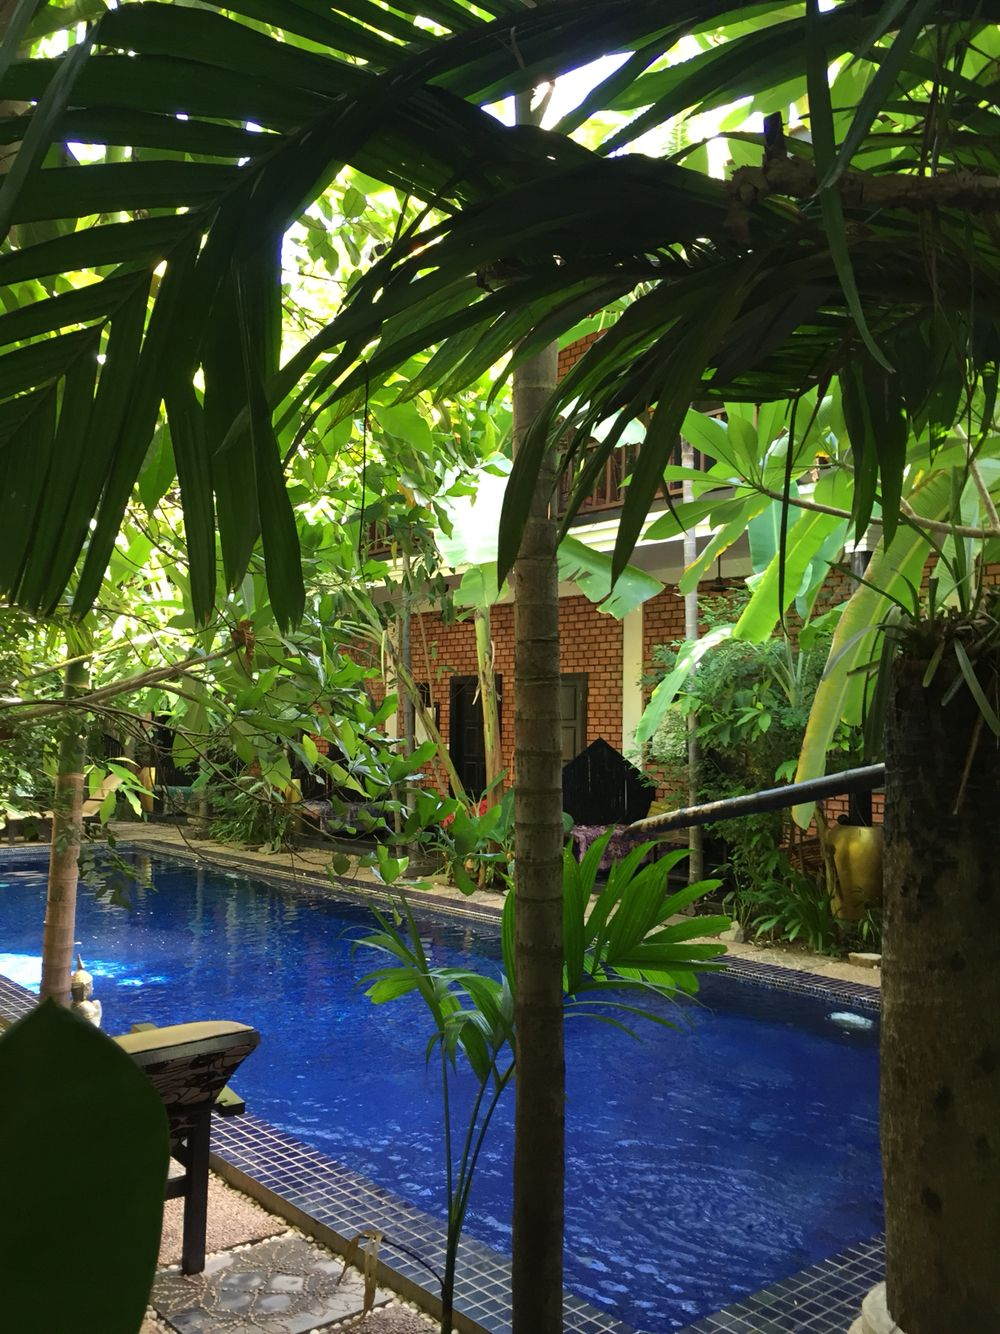 www.petitvilla.com Recommended Angkor Wat destinations for you while your are visiting ASEAN country # booking@petitvilla.com offer free pick up @ +855 888 575 389